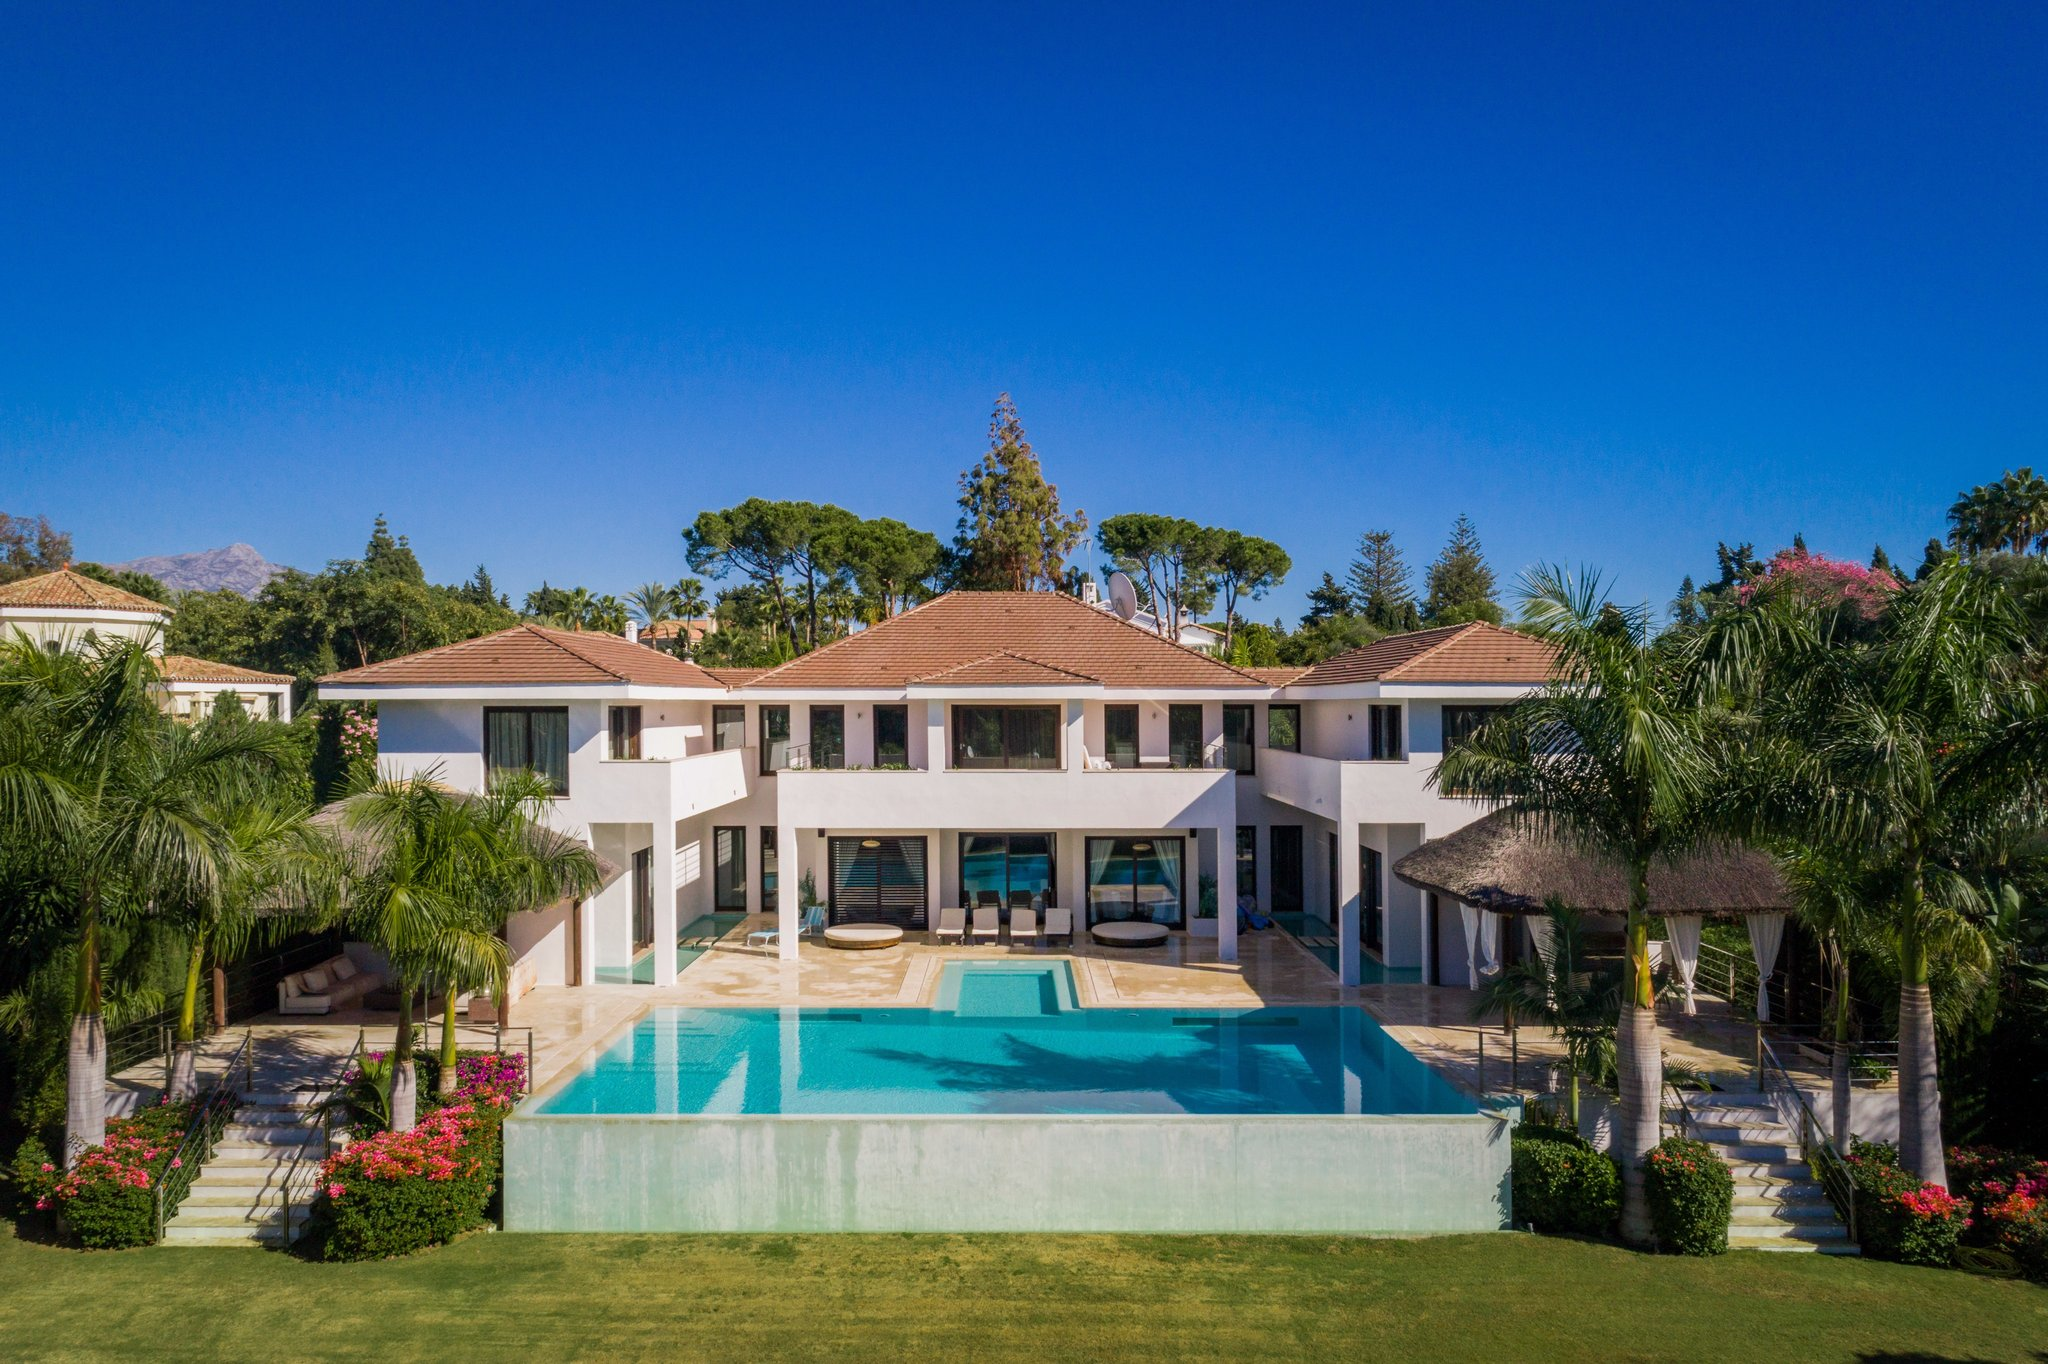 Our Property of the week: Price Reduced. Stunning Villa in Guadalmina Baja